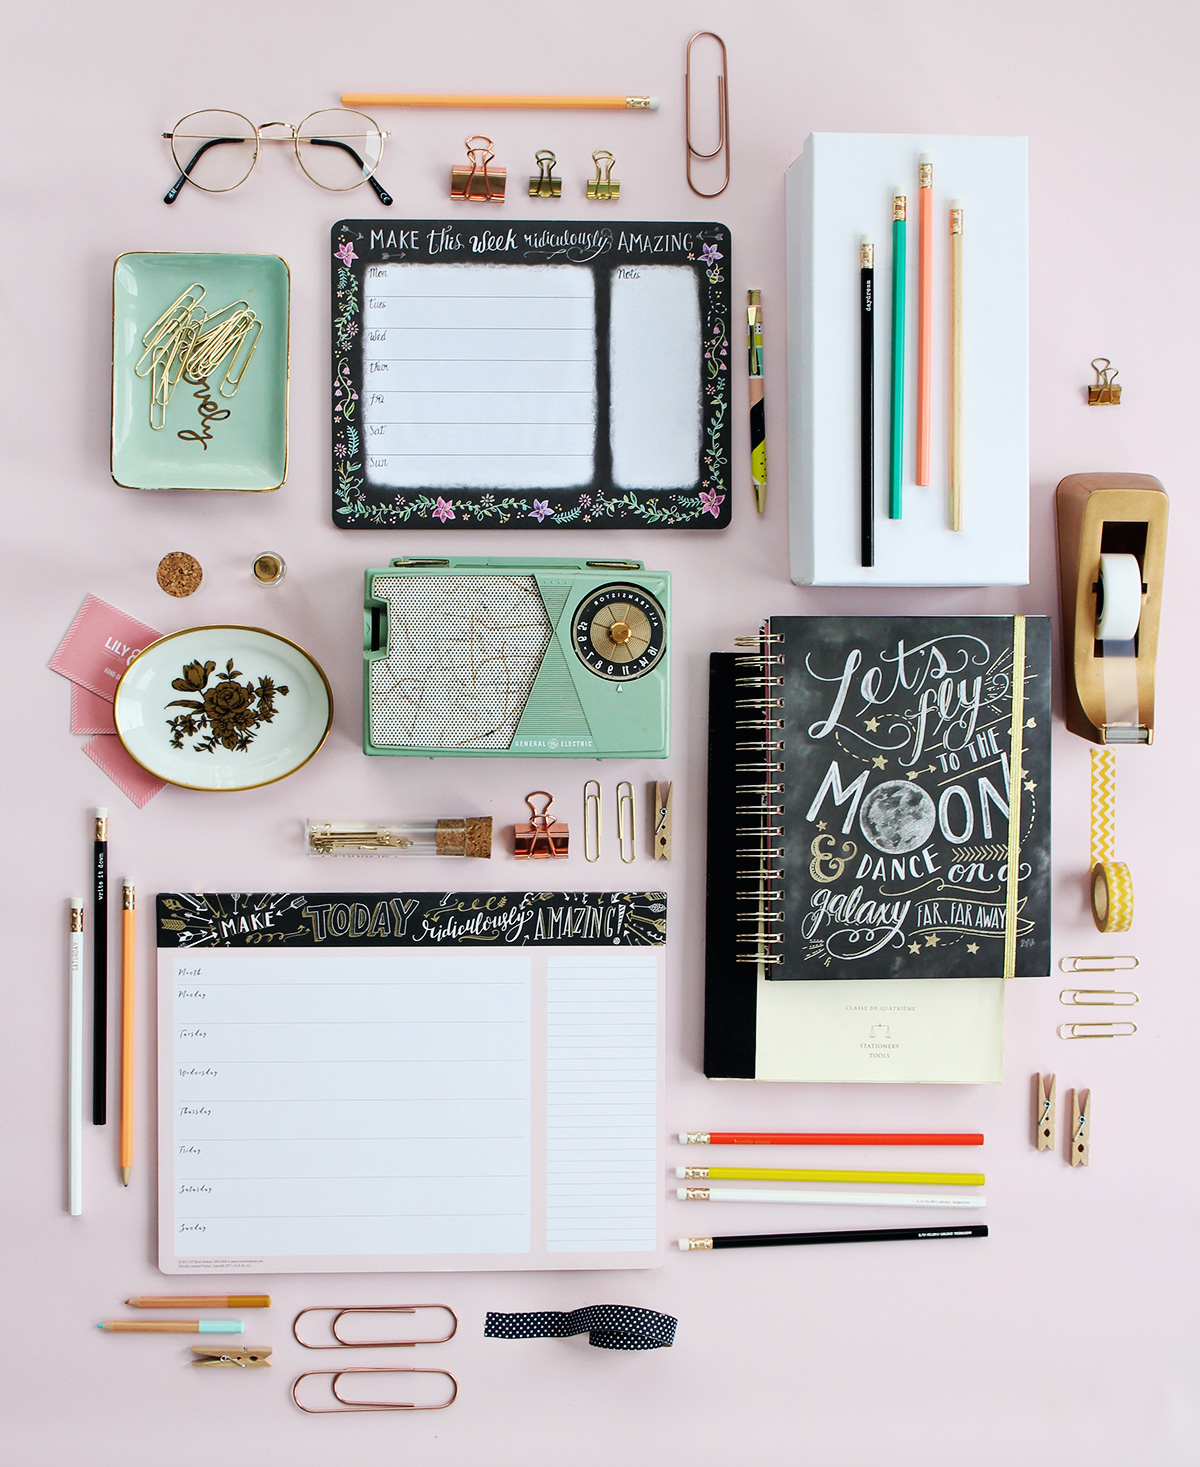 Beautiful hand-drawn and gold foil paper supplies to pretty your home or office desk